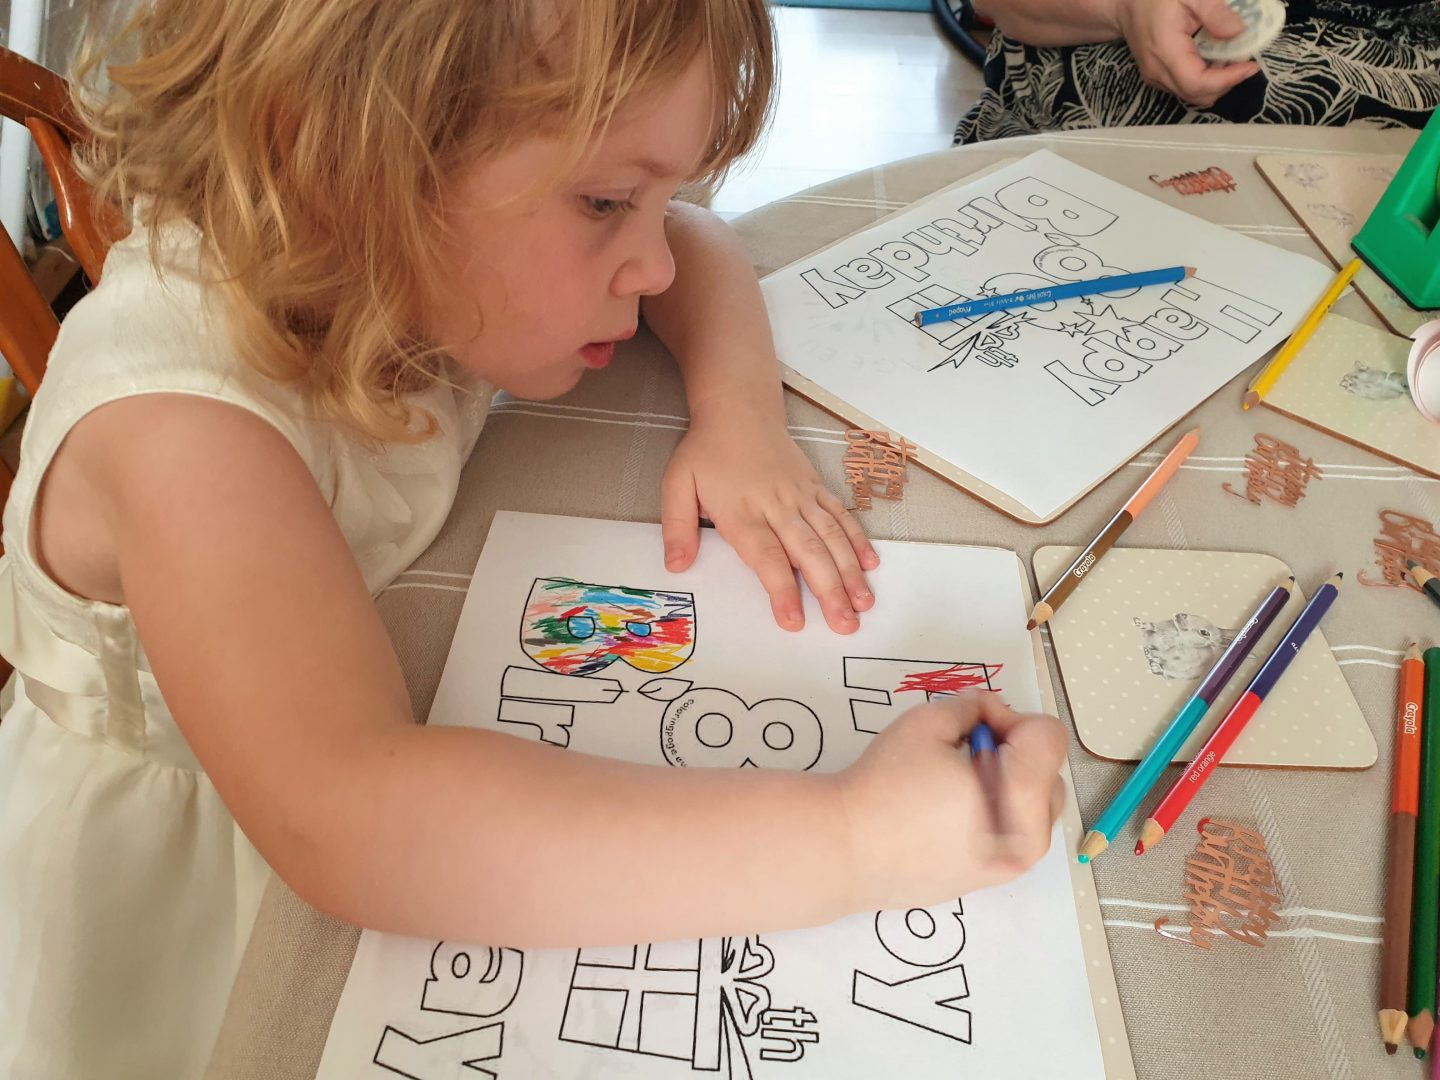 Child colouring in birthday banner